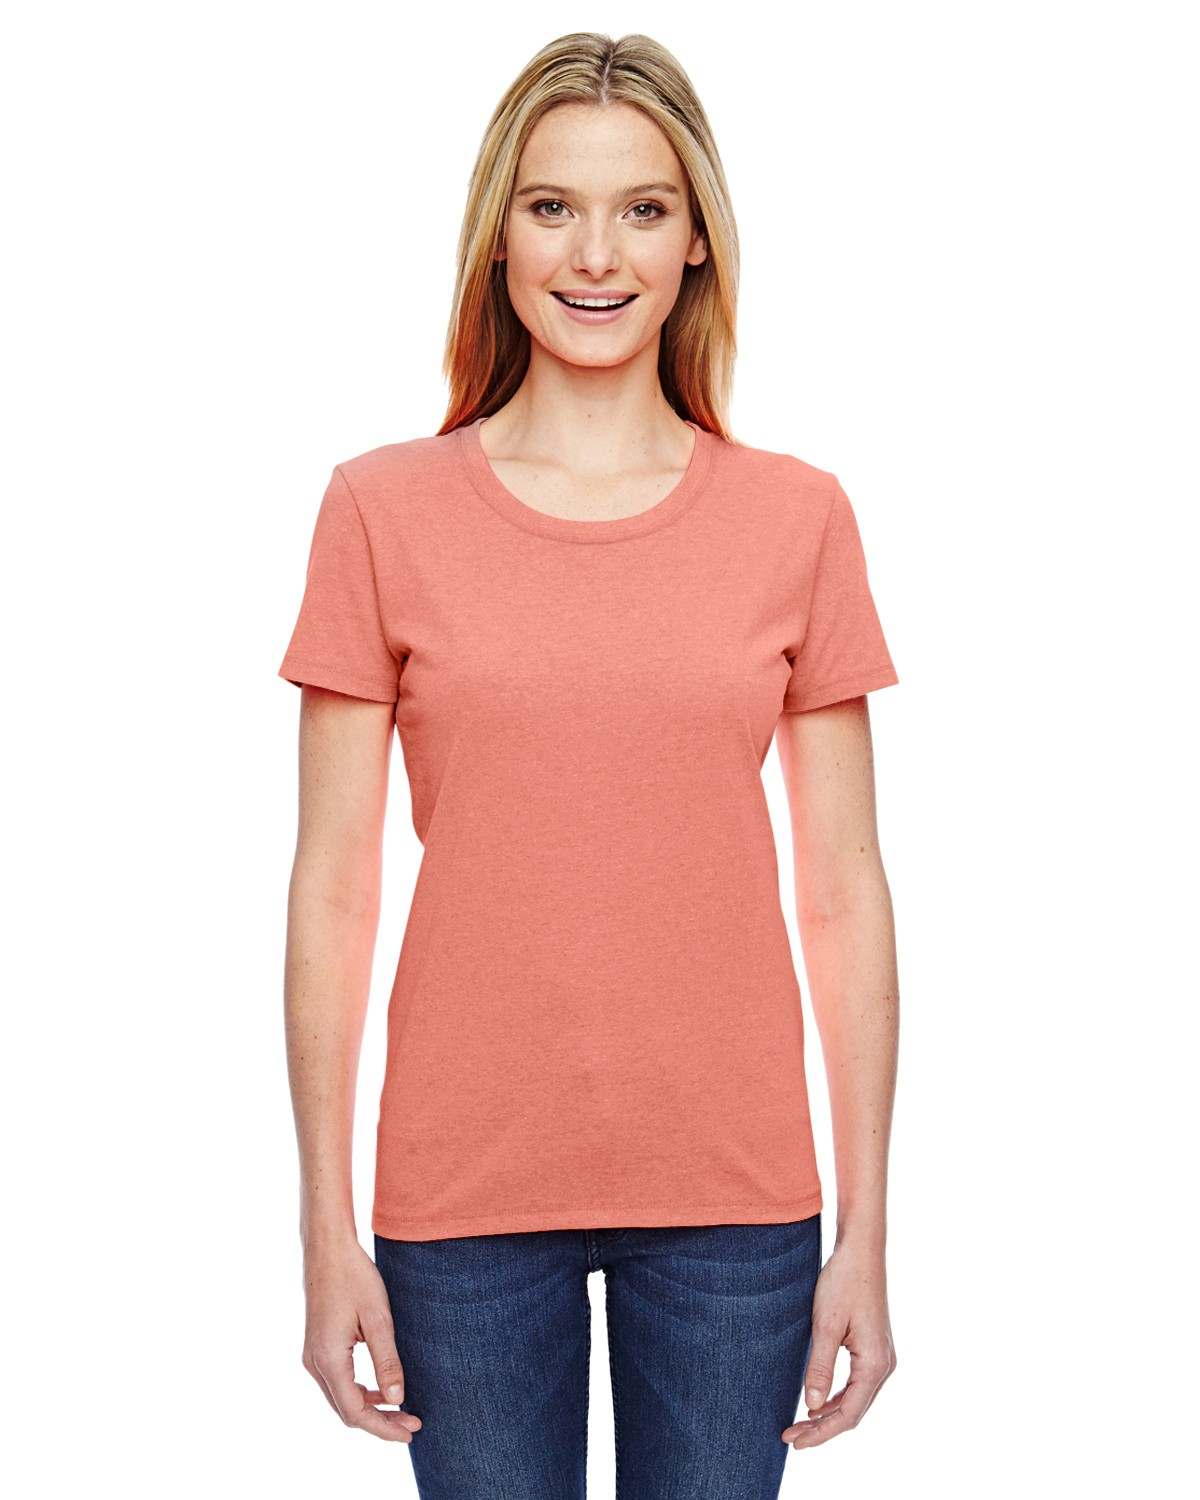 L3930R Fruit of the Loom RETRO HTR CORAL